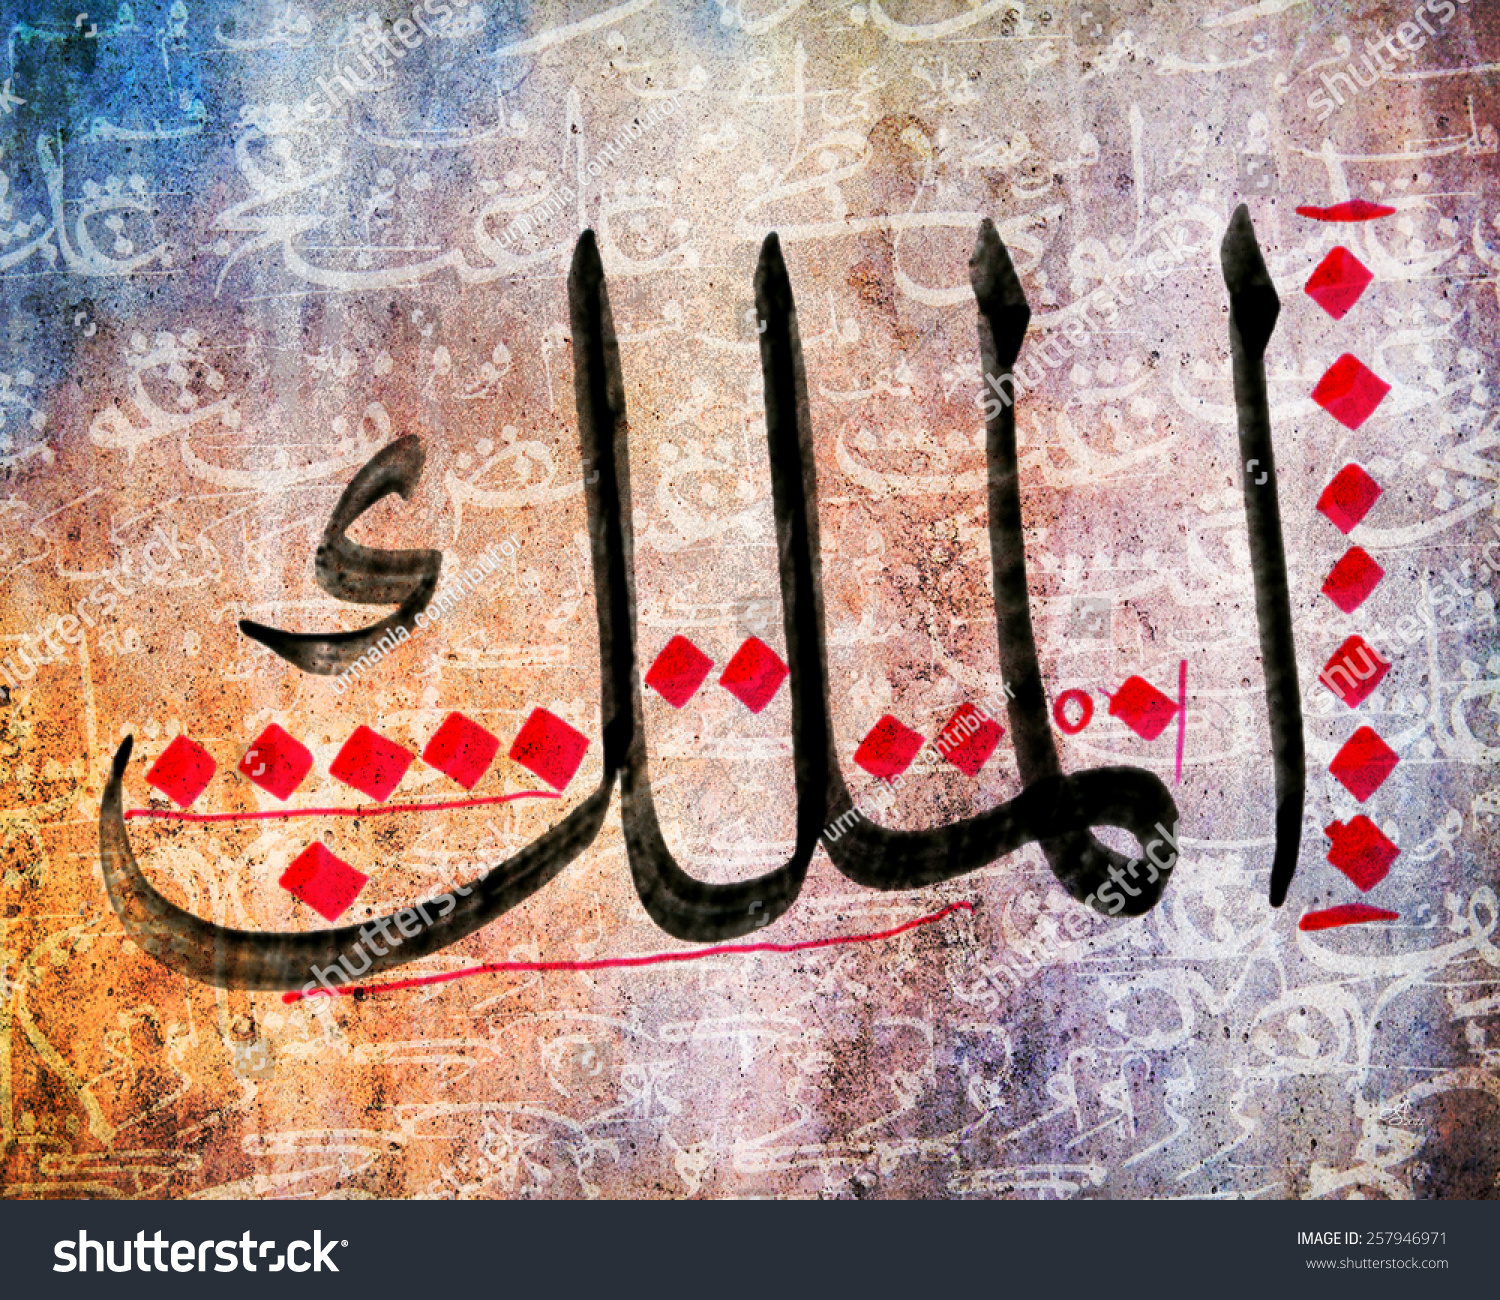 Islamic calligraphy king sovereign stock illustration